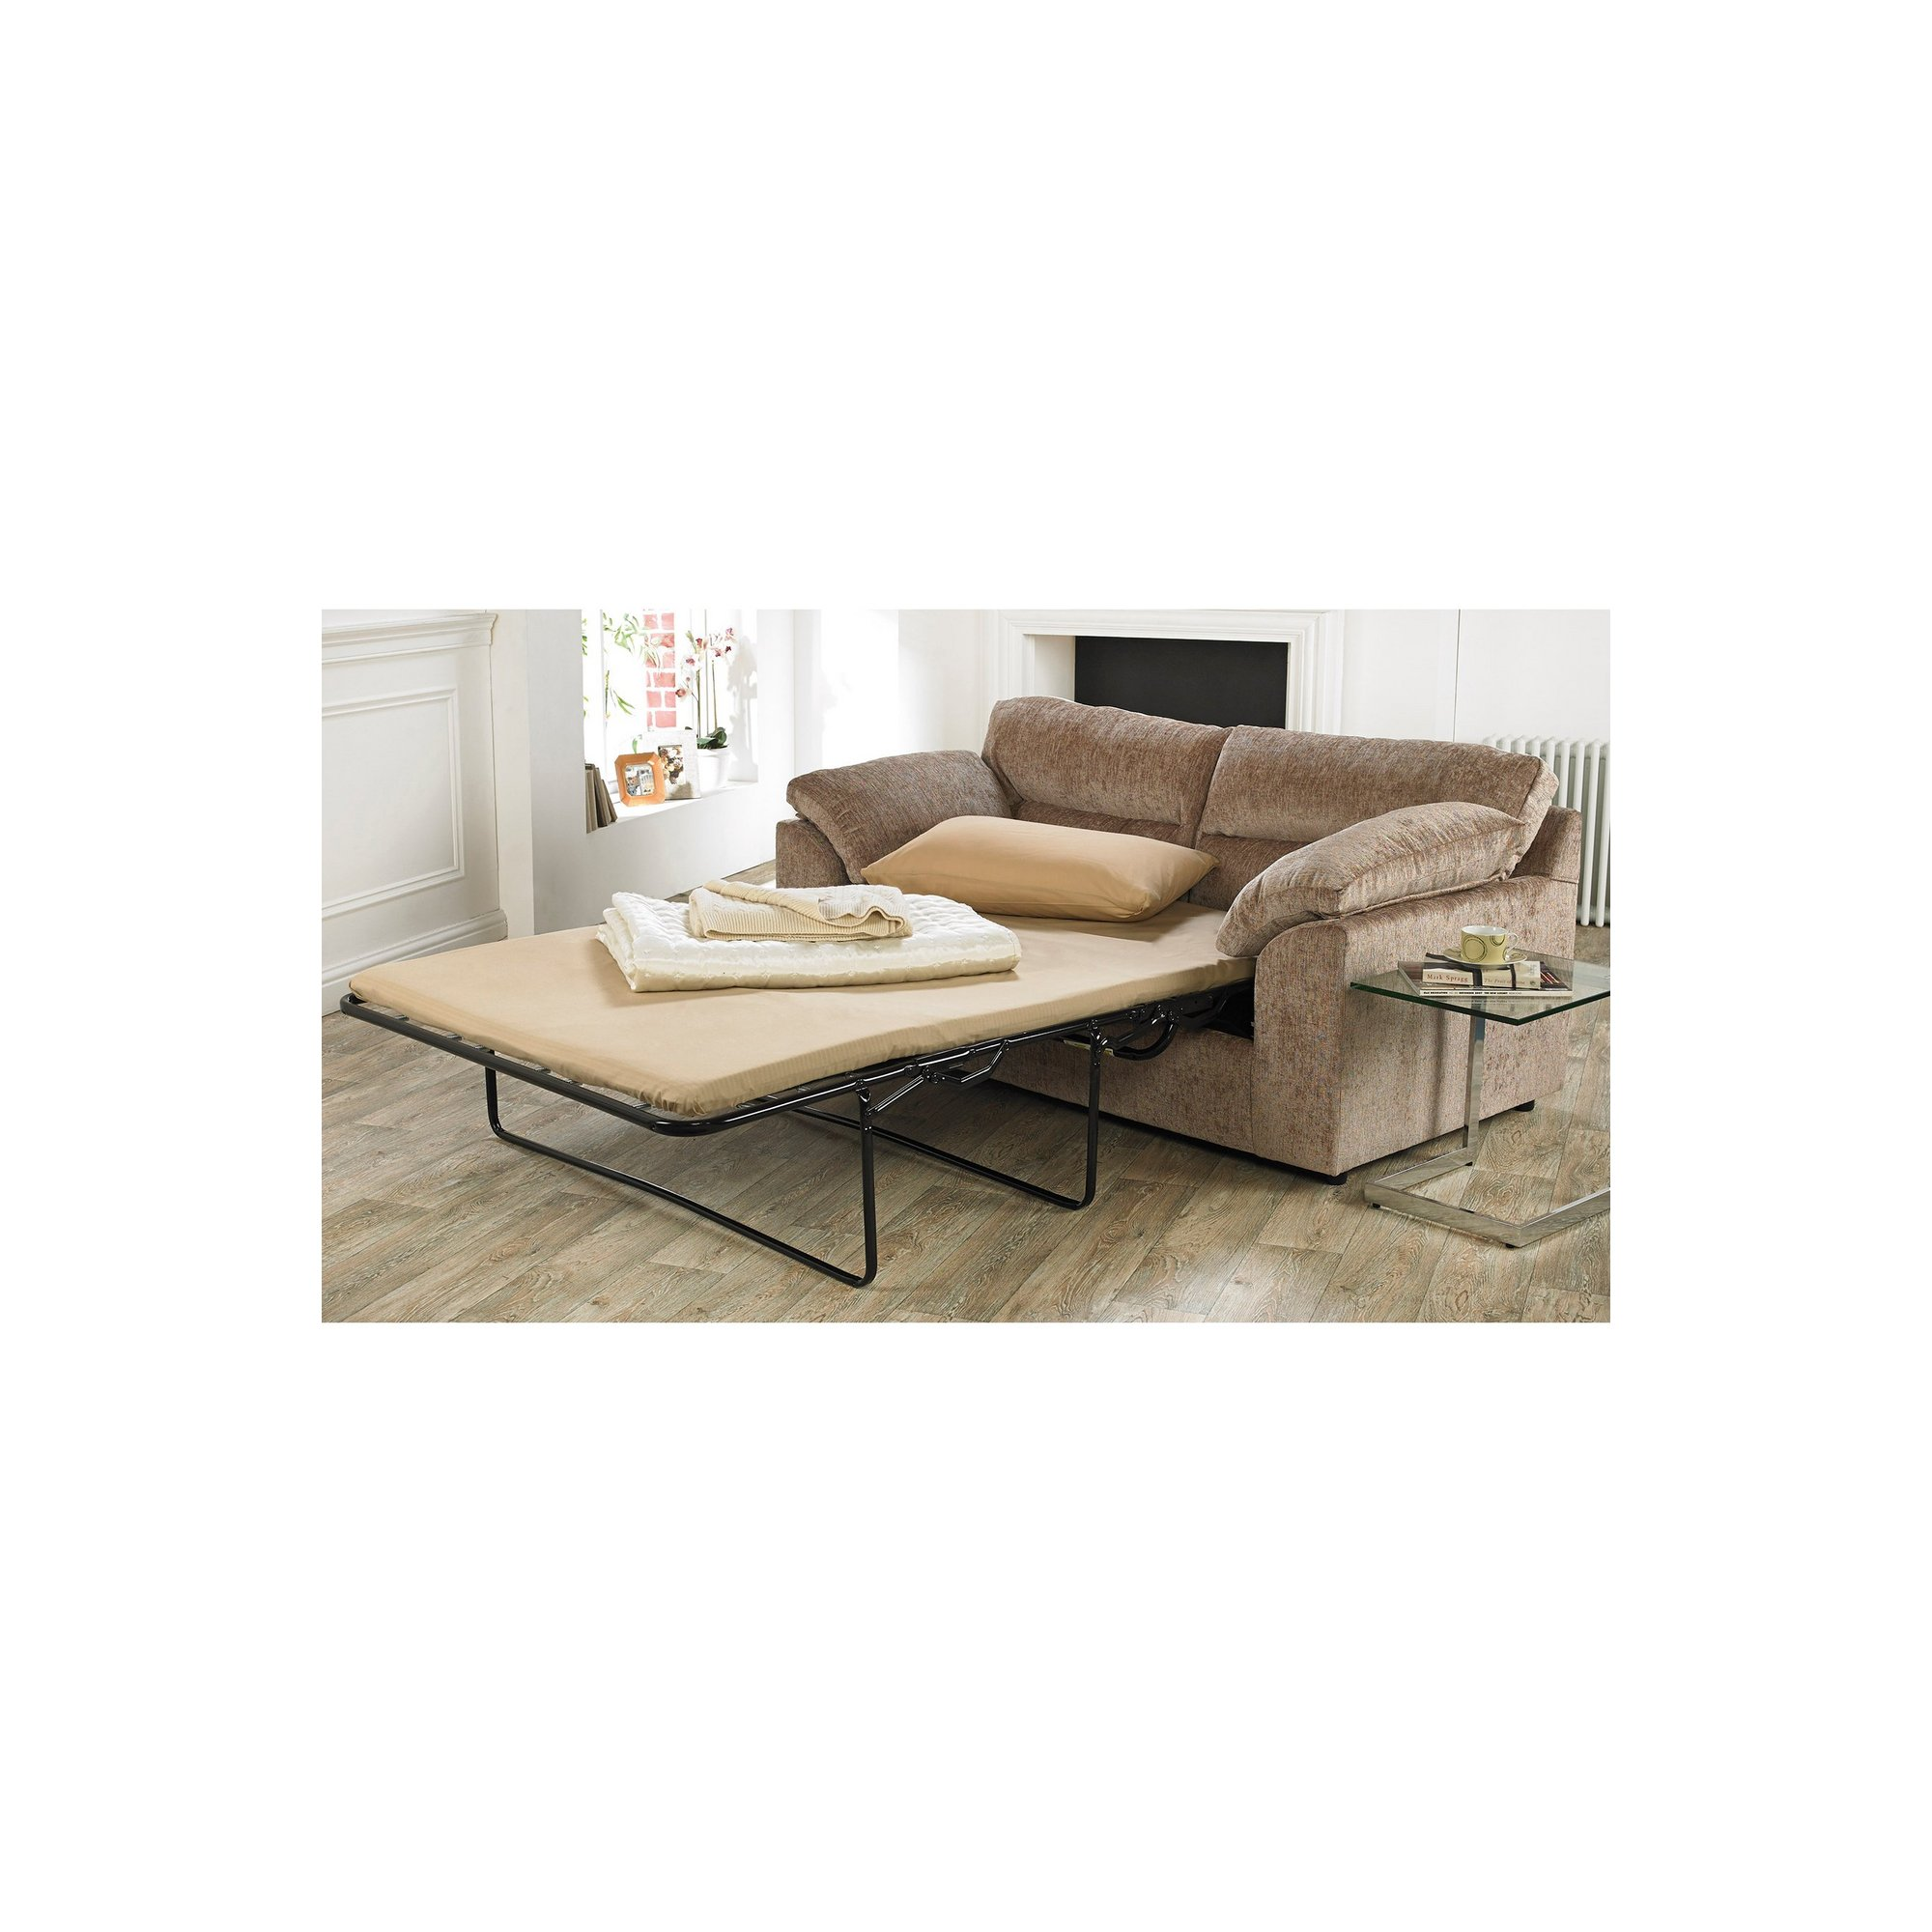 Image of Shannon Sofa Bed